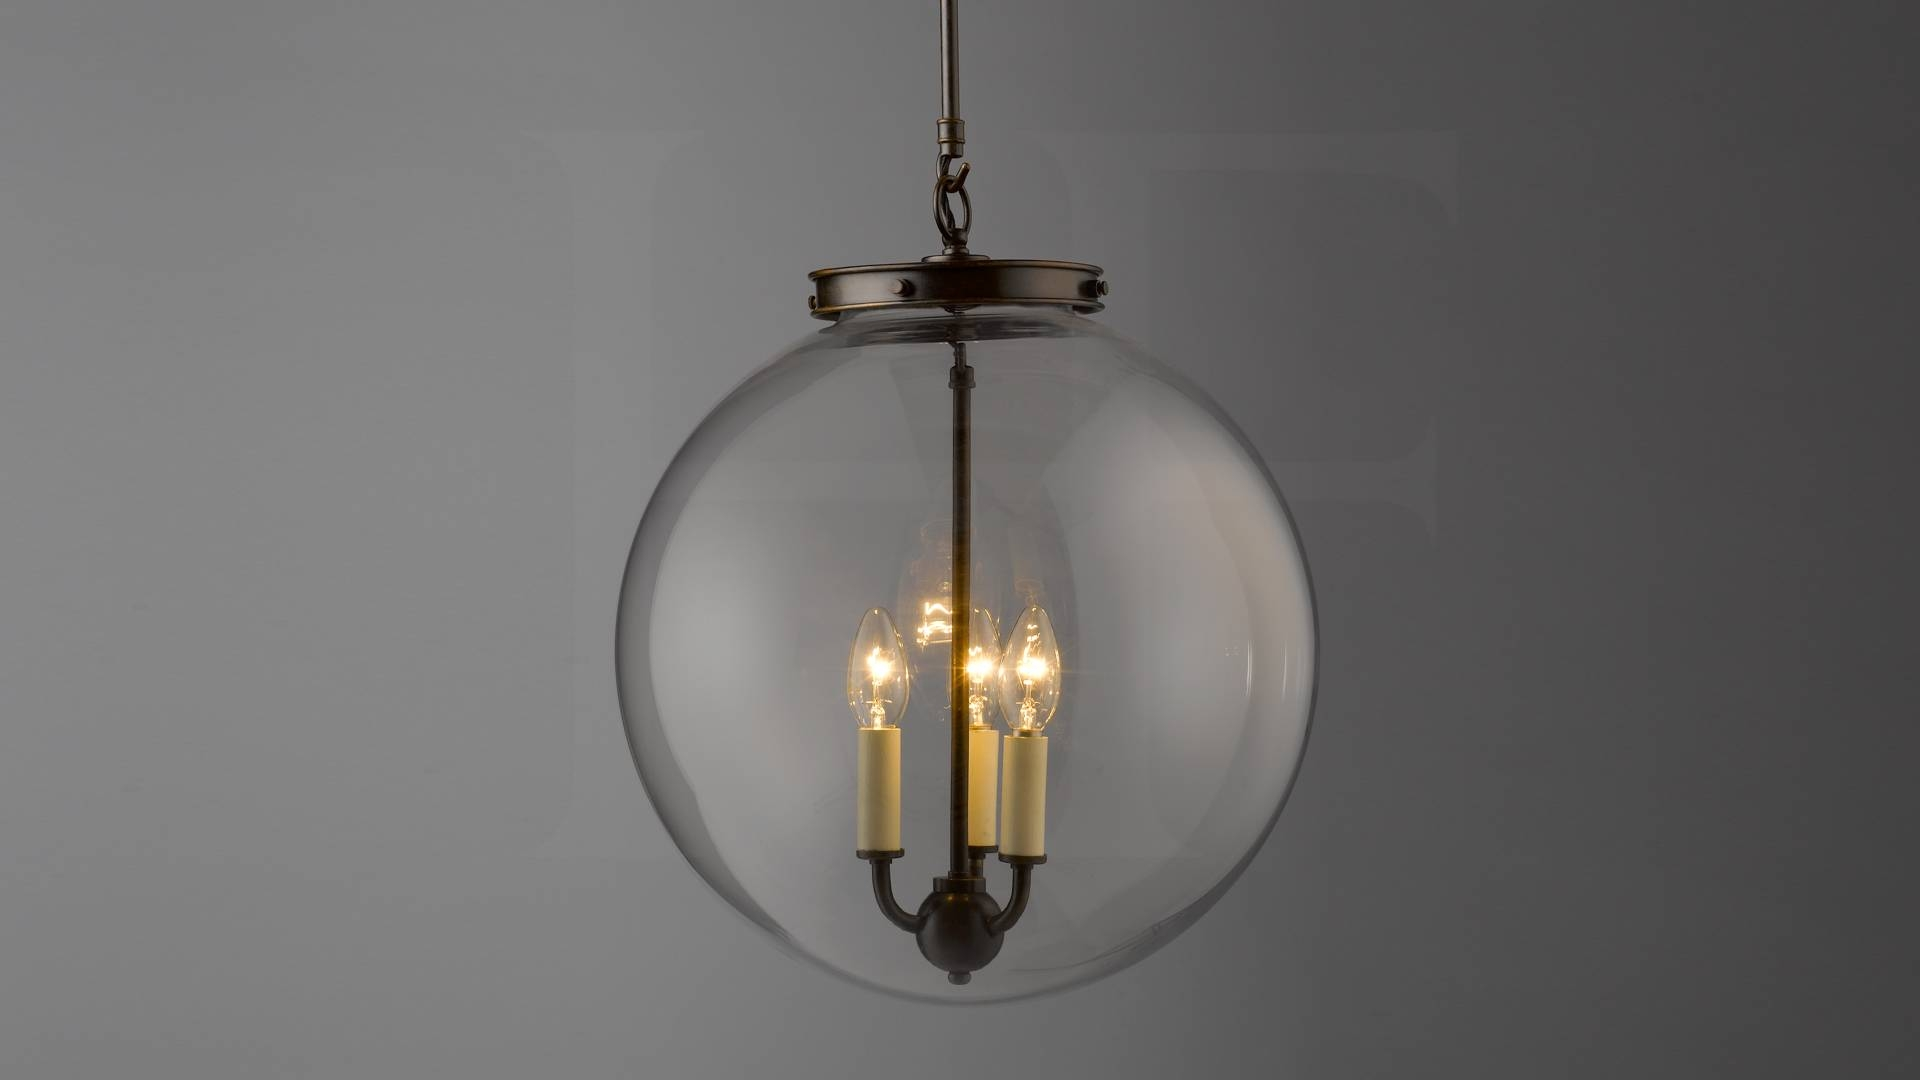 Hector Glass Globe, Largehector Finch Lighting throughout Glass Sphere Pendant Lights (Image 9 of 15)